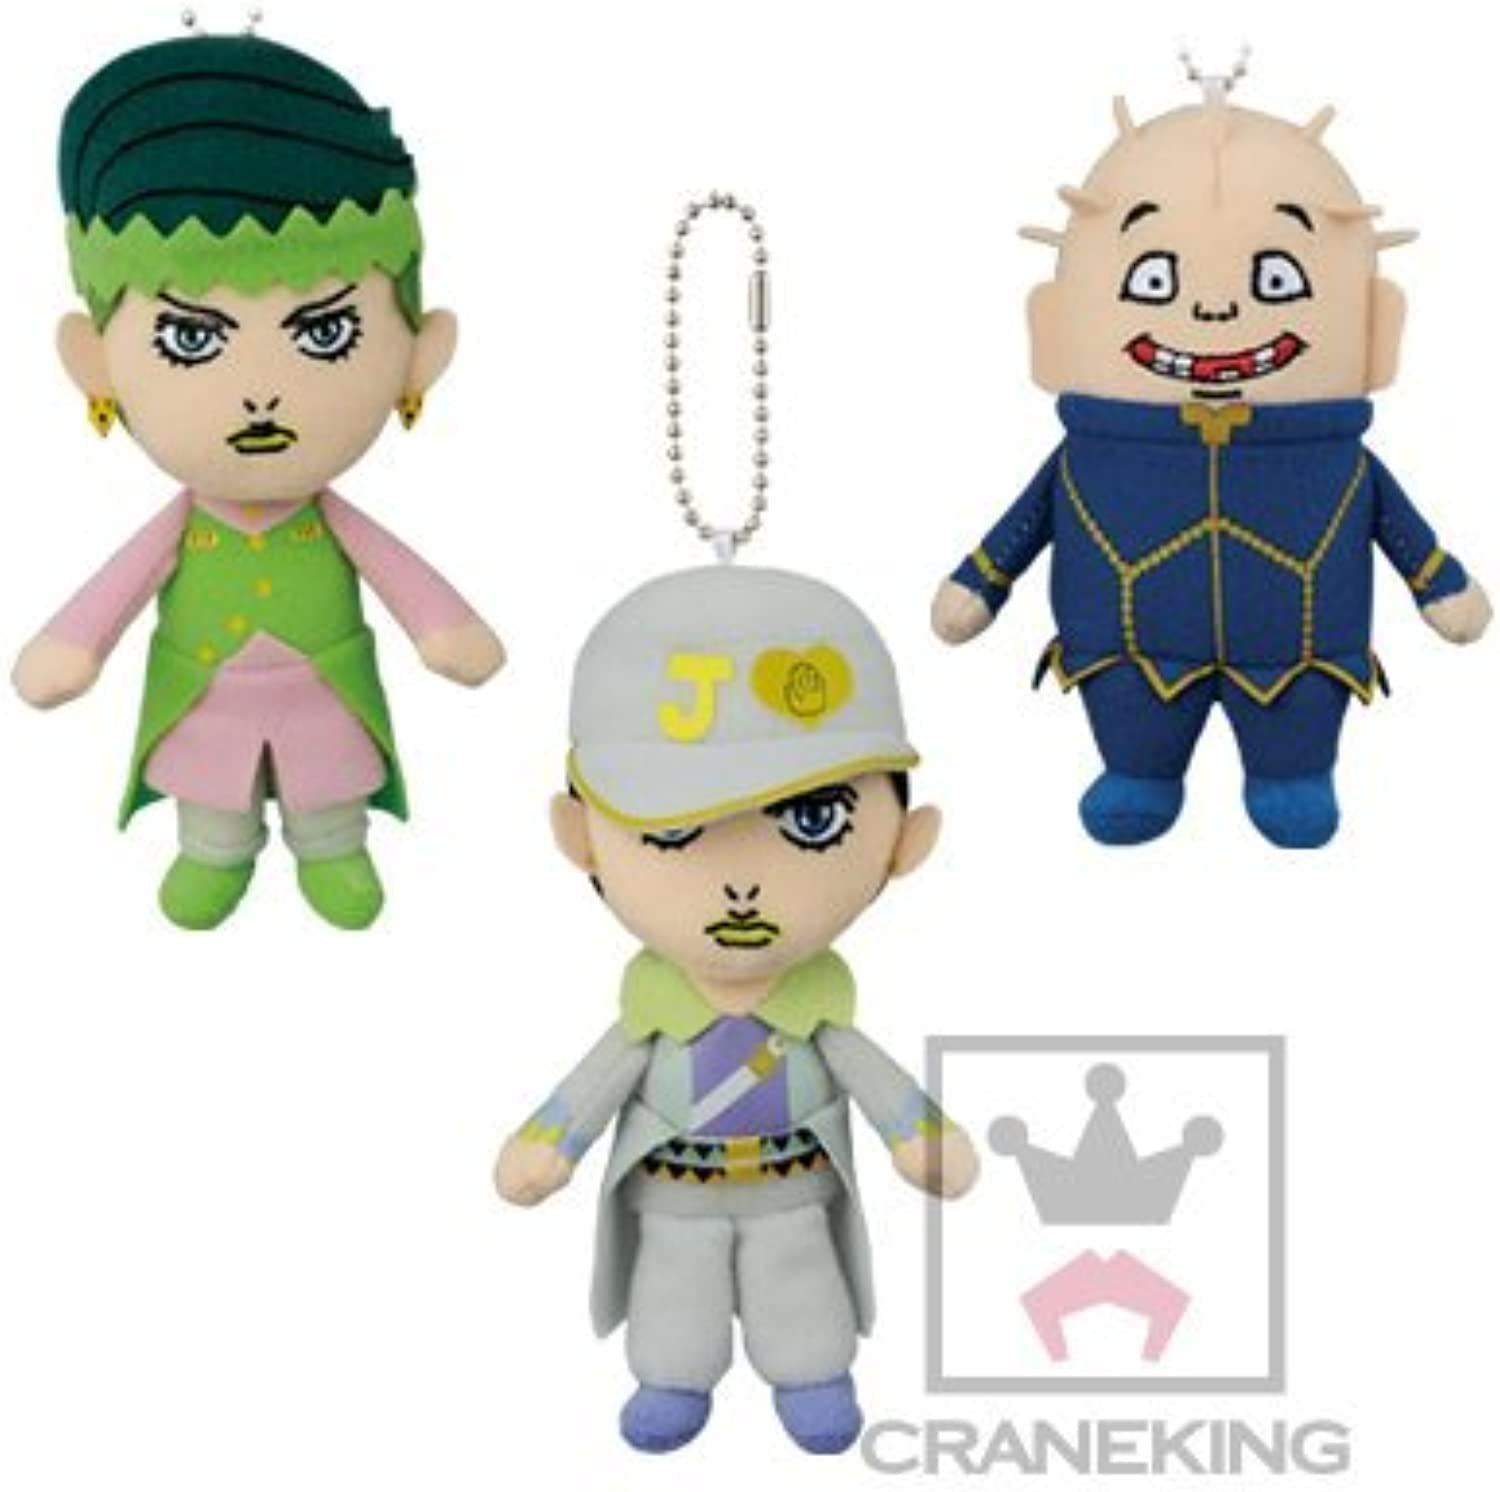 JoJo's Bizarre Adventure Diamond is attached to the Jojo overstuffed bag that does not crumble huge stuffed vol.2 all three